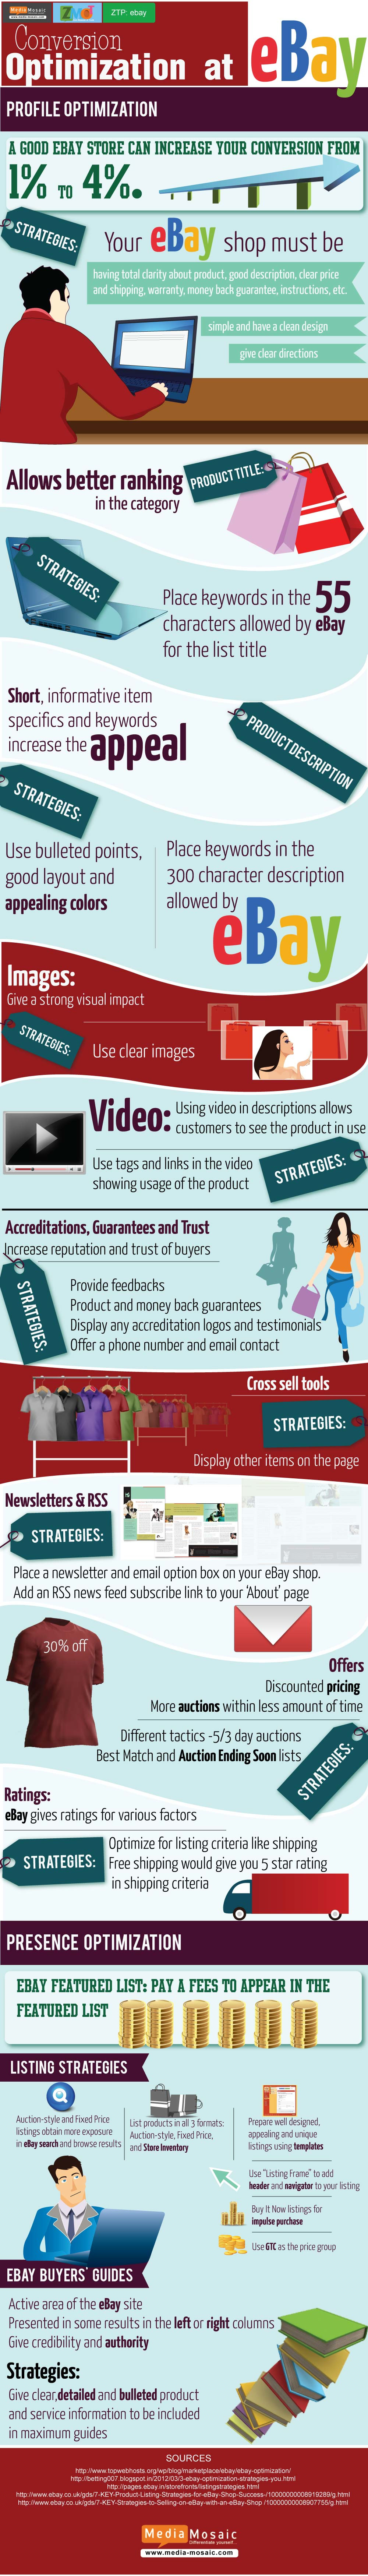 How to Increase Conversion Rates on eBay? - Image 1